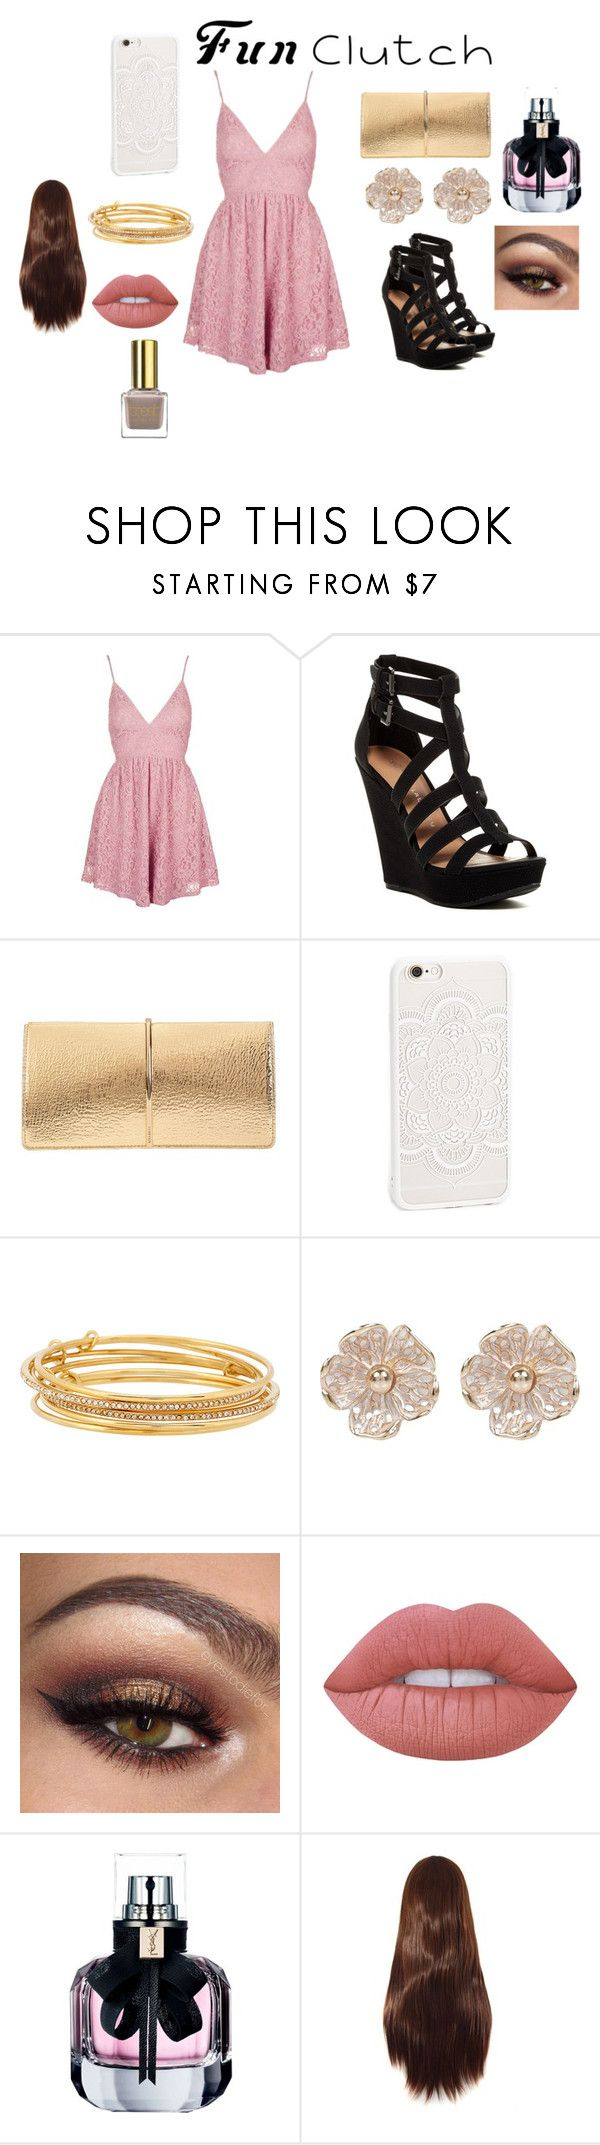 """""""Girly Date"""" by fashionistagirl9898 on Polyvore featuring Topshop, Chinese Laundry, Nina Ricci, JFR, Kate Spade, River Island, Lime Crime and Yves Saint Laurent"""